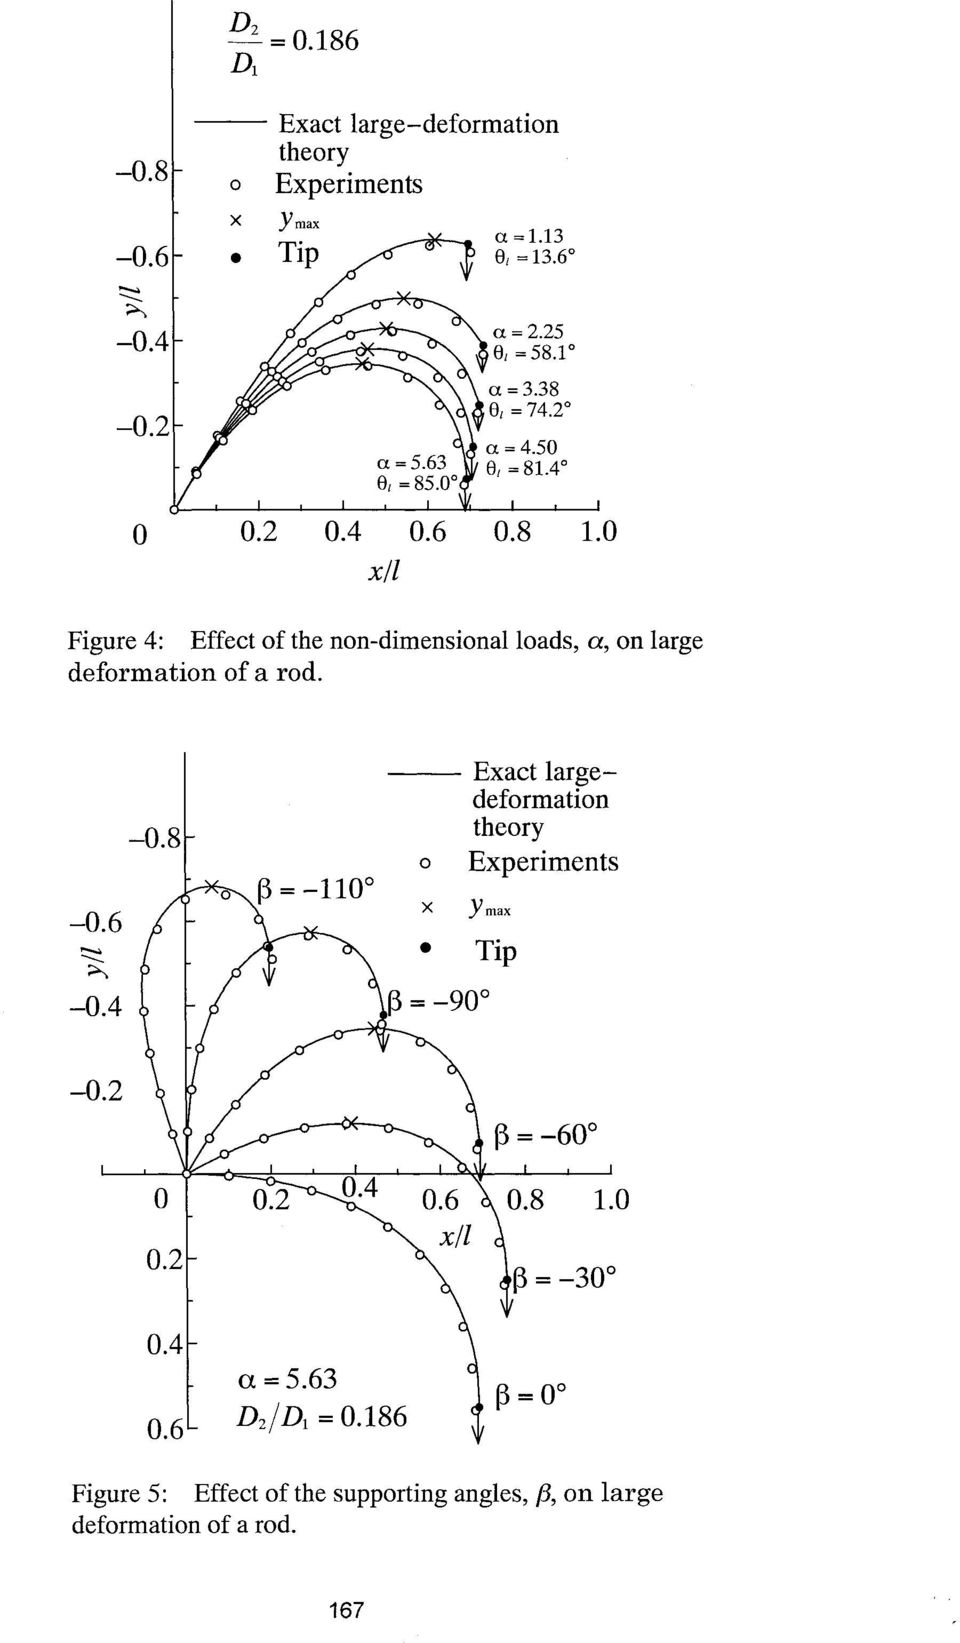 0 Figure 4: Effect of the non-dimensional loads, a, on large deformation of a rod.